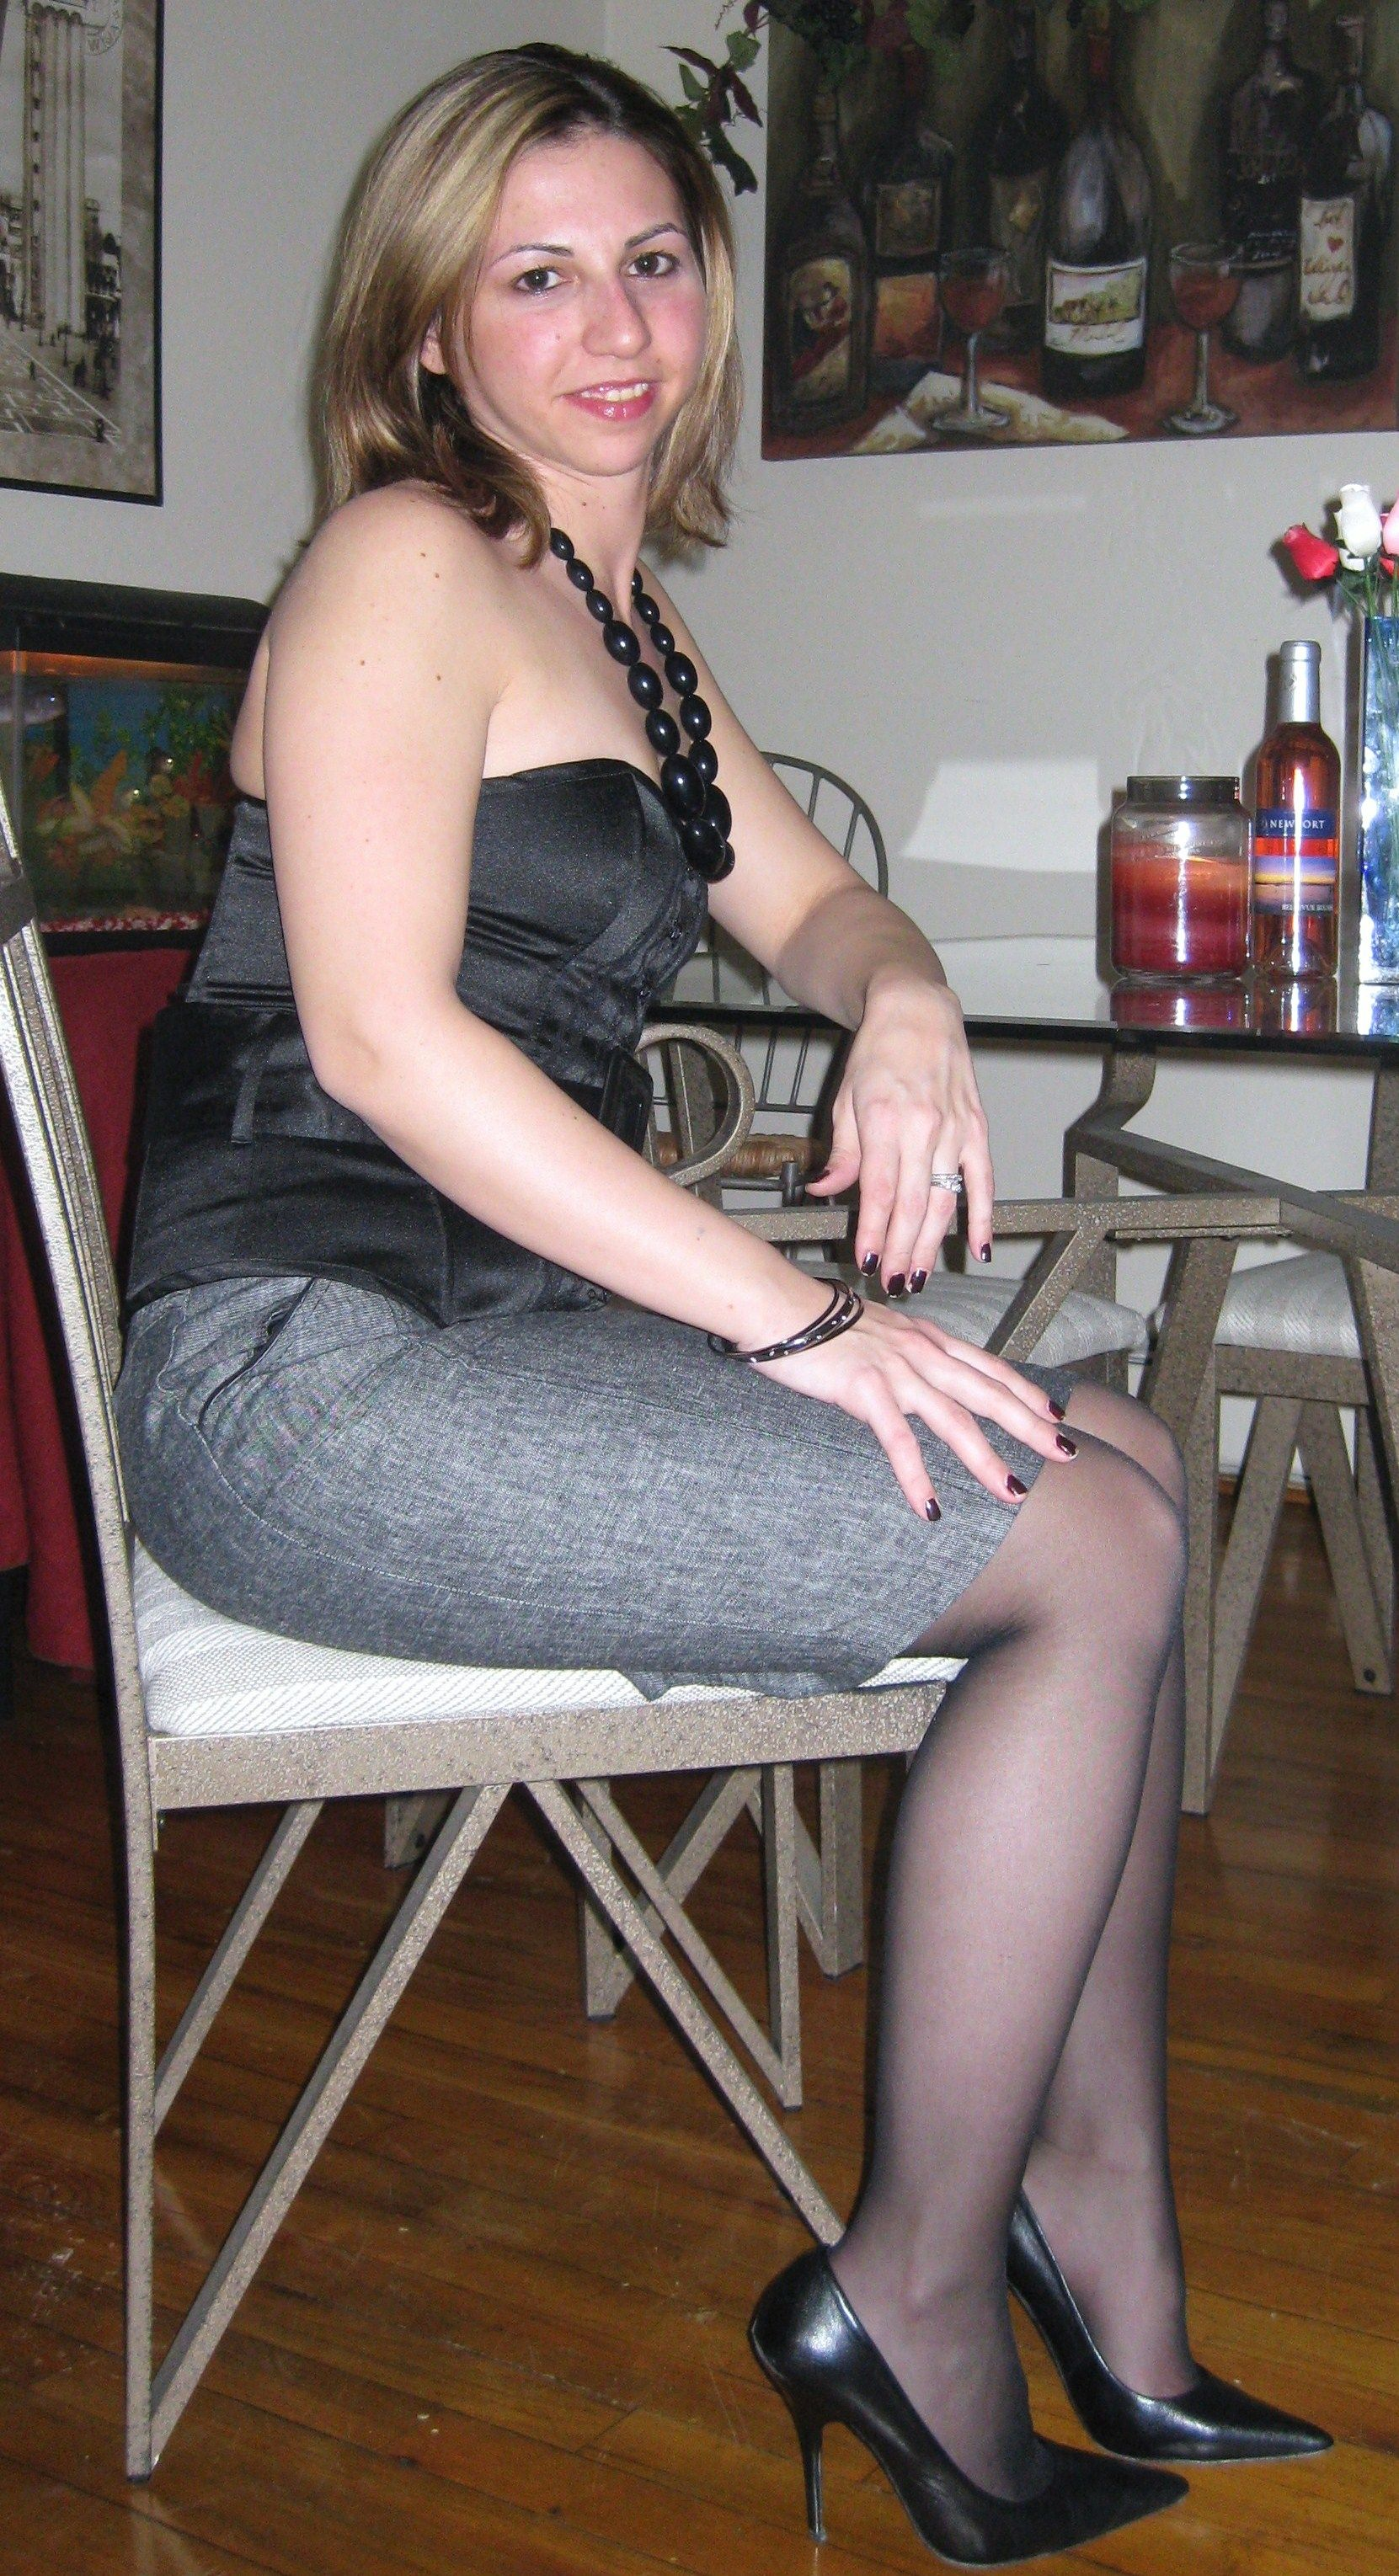 woman Amateur older pic